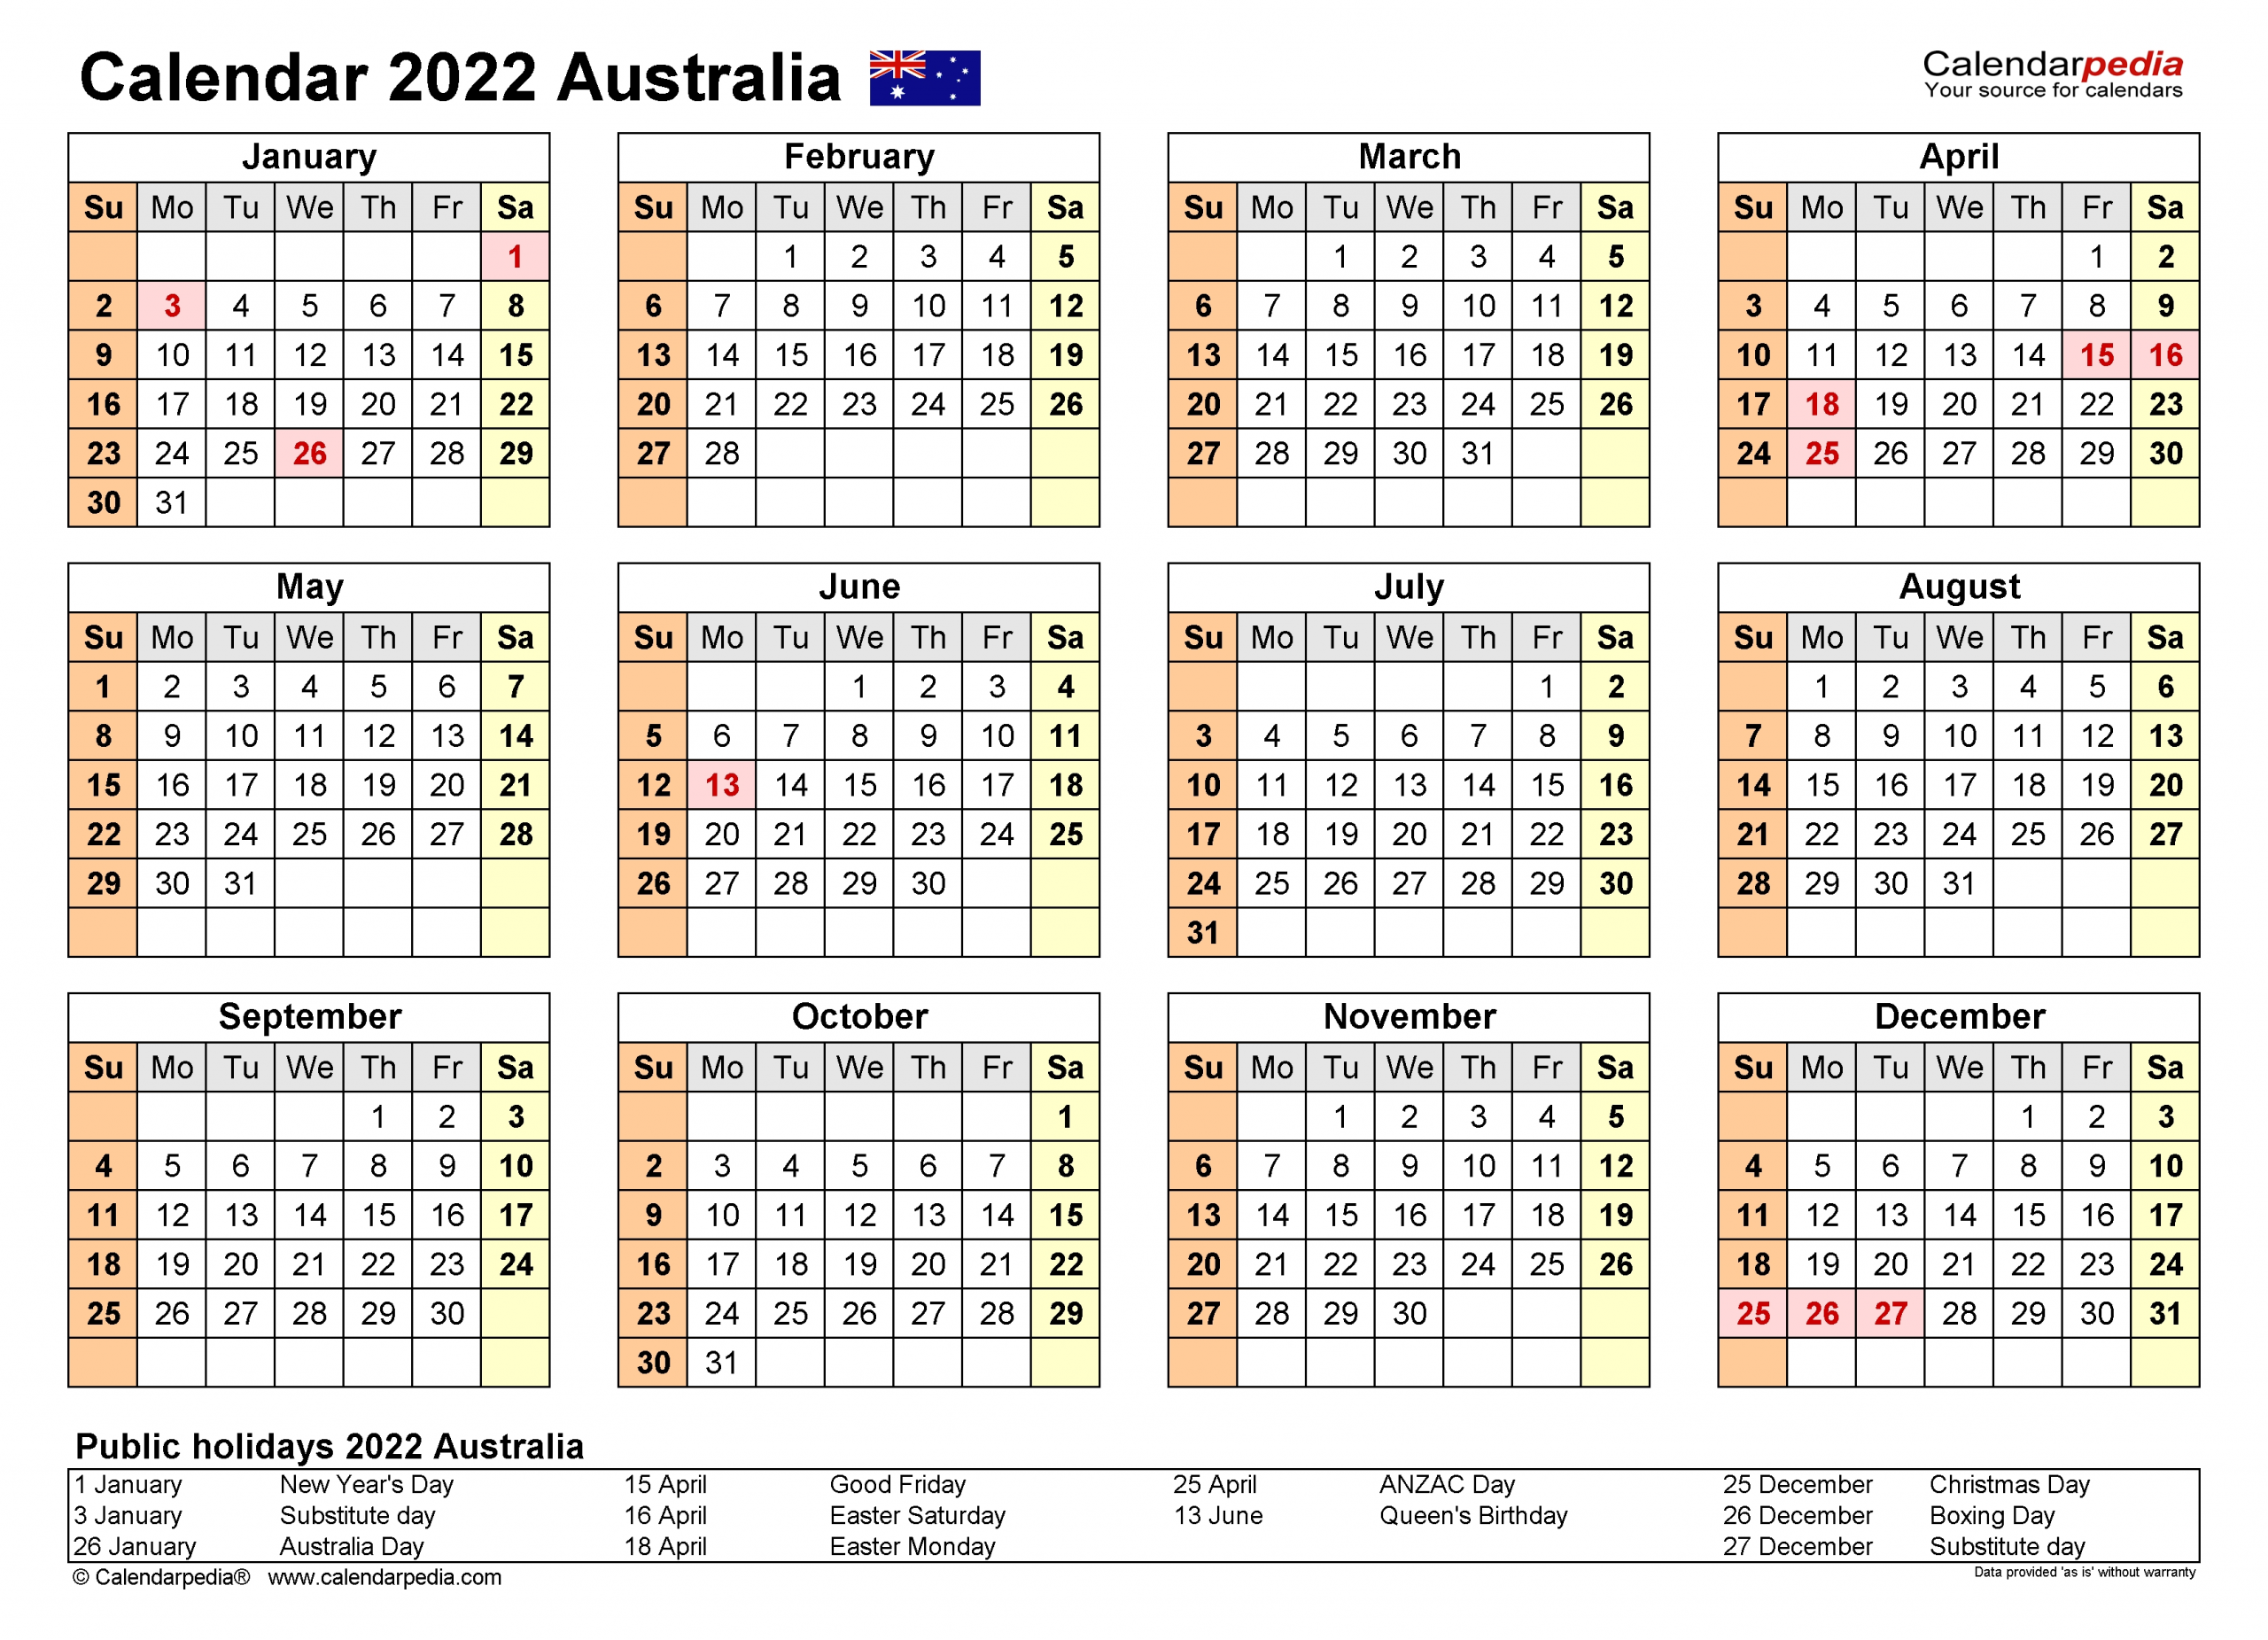 Australia Calendar 2022 - Free Printable Pdf Templates  What Fiscal Year Is It Currently In Australia